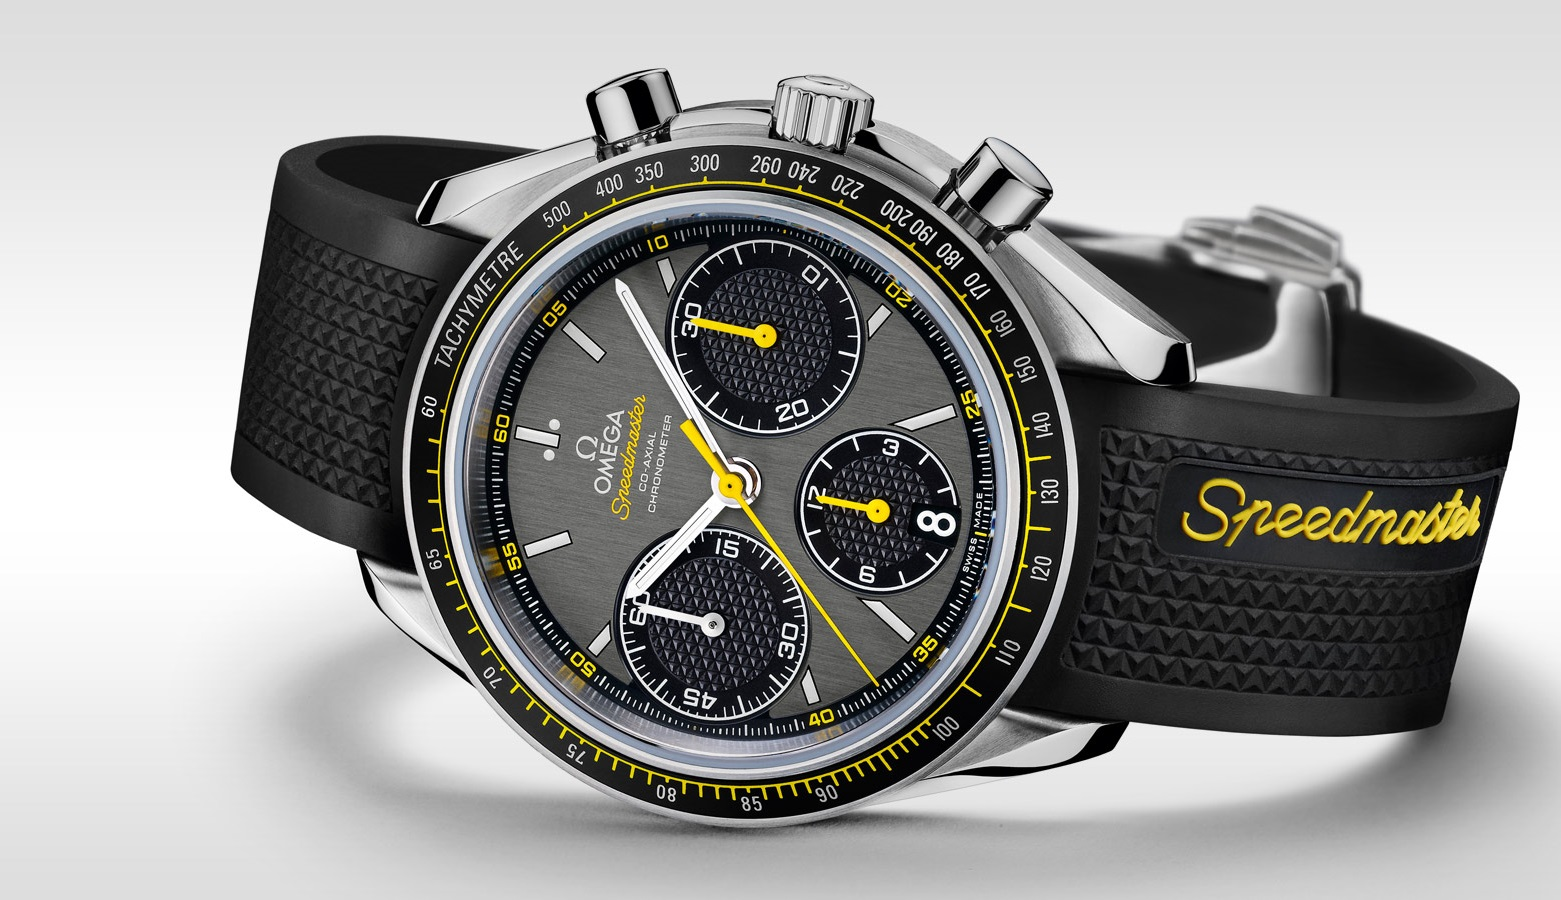 080217-top-10-motorsports-watches-omega-speedmaster